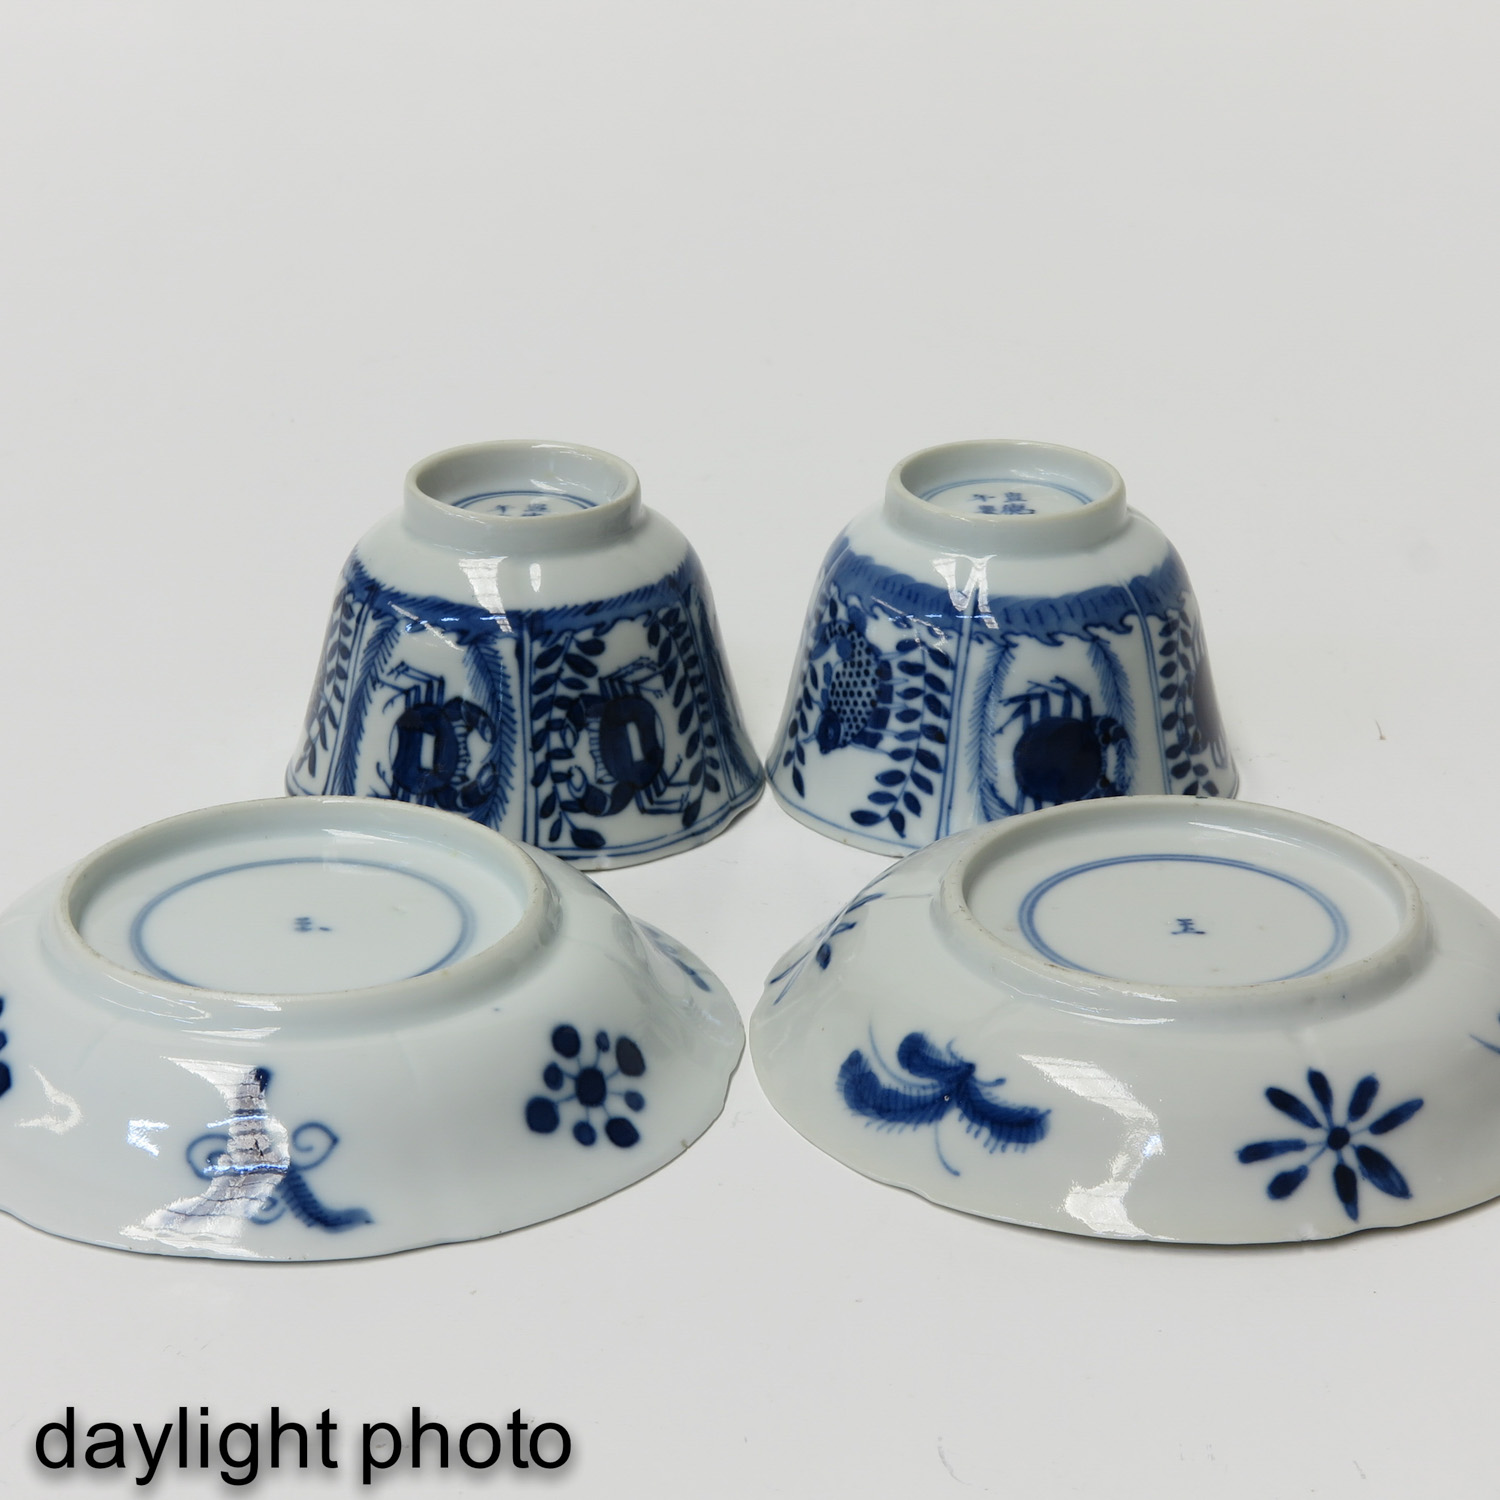 A Pair of Blue and White Cups and Saucers - Image 8 of 9